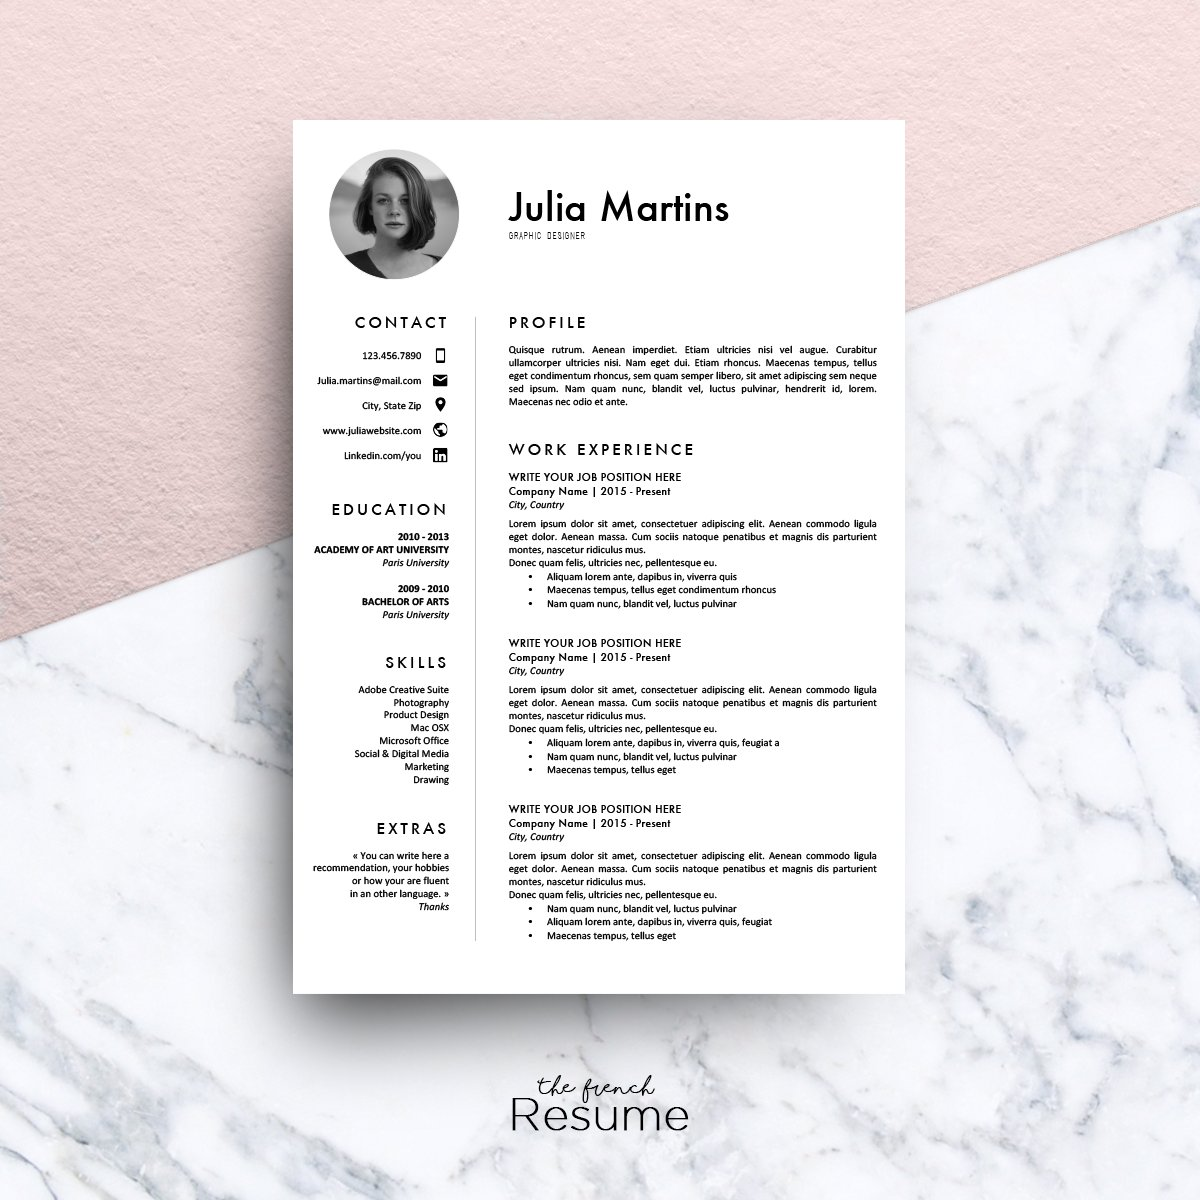 resume template ms word julia resume templates creative market - Where To Find A Resume Template On Microsoft Word